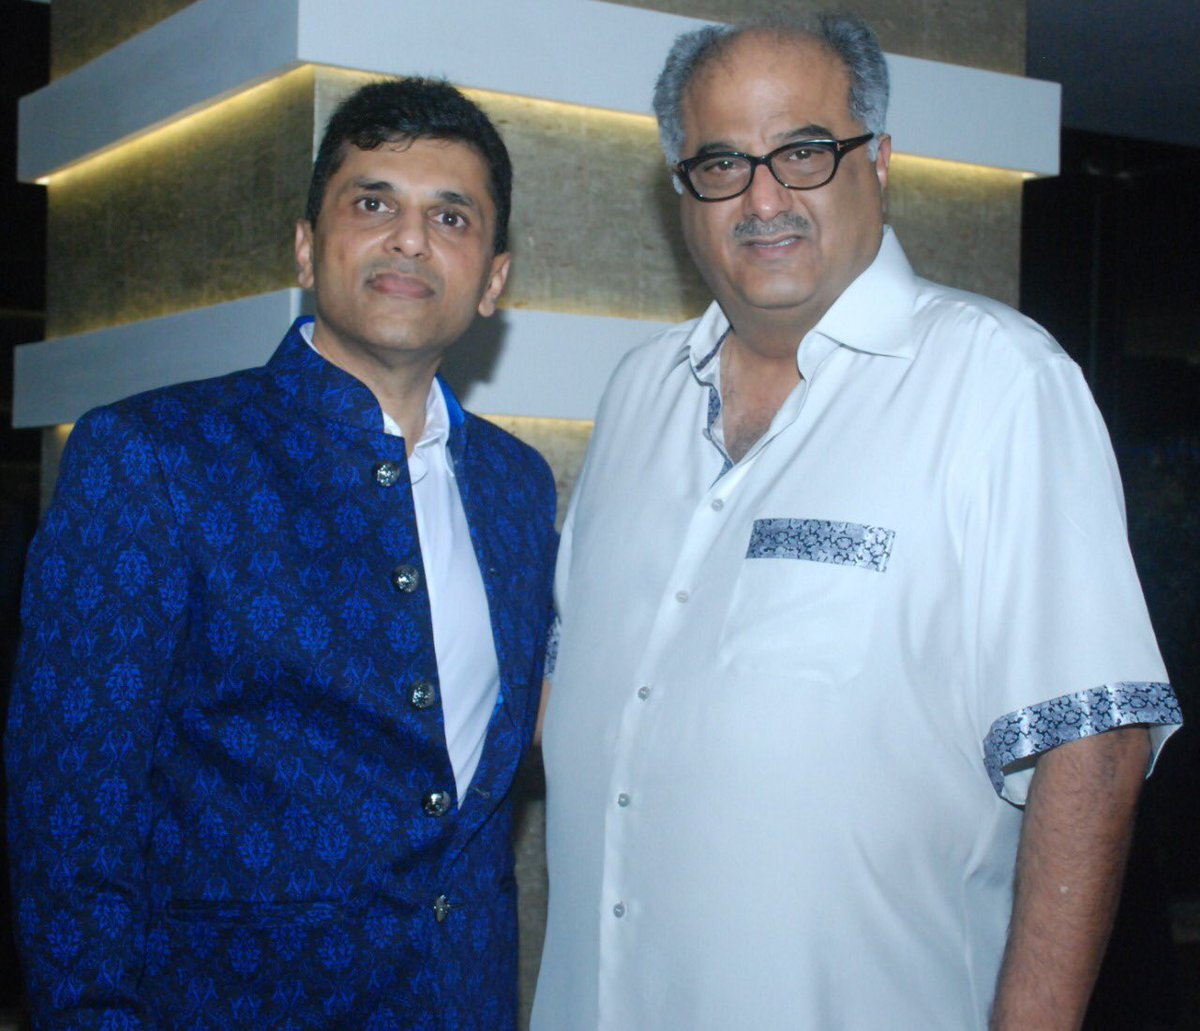 Wishing ace-producer and dear friend @BoneyKapoor a very Happy Birthday. May success and happiness forever surround you and your family. . . #HappyBirthday #BoneyKapoor #HappyBirthdayBoneyKapoor https://t.co/Rsjq7f7cOb